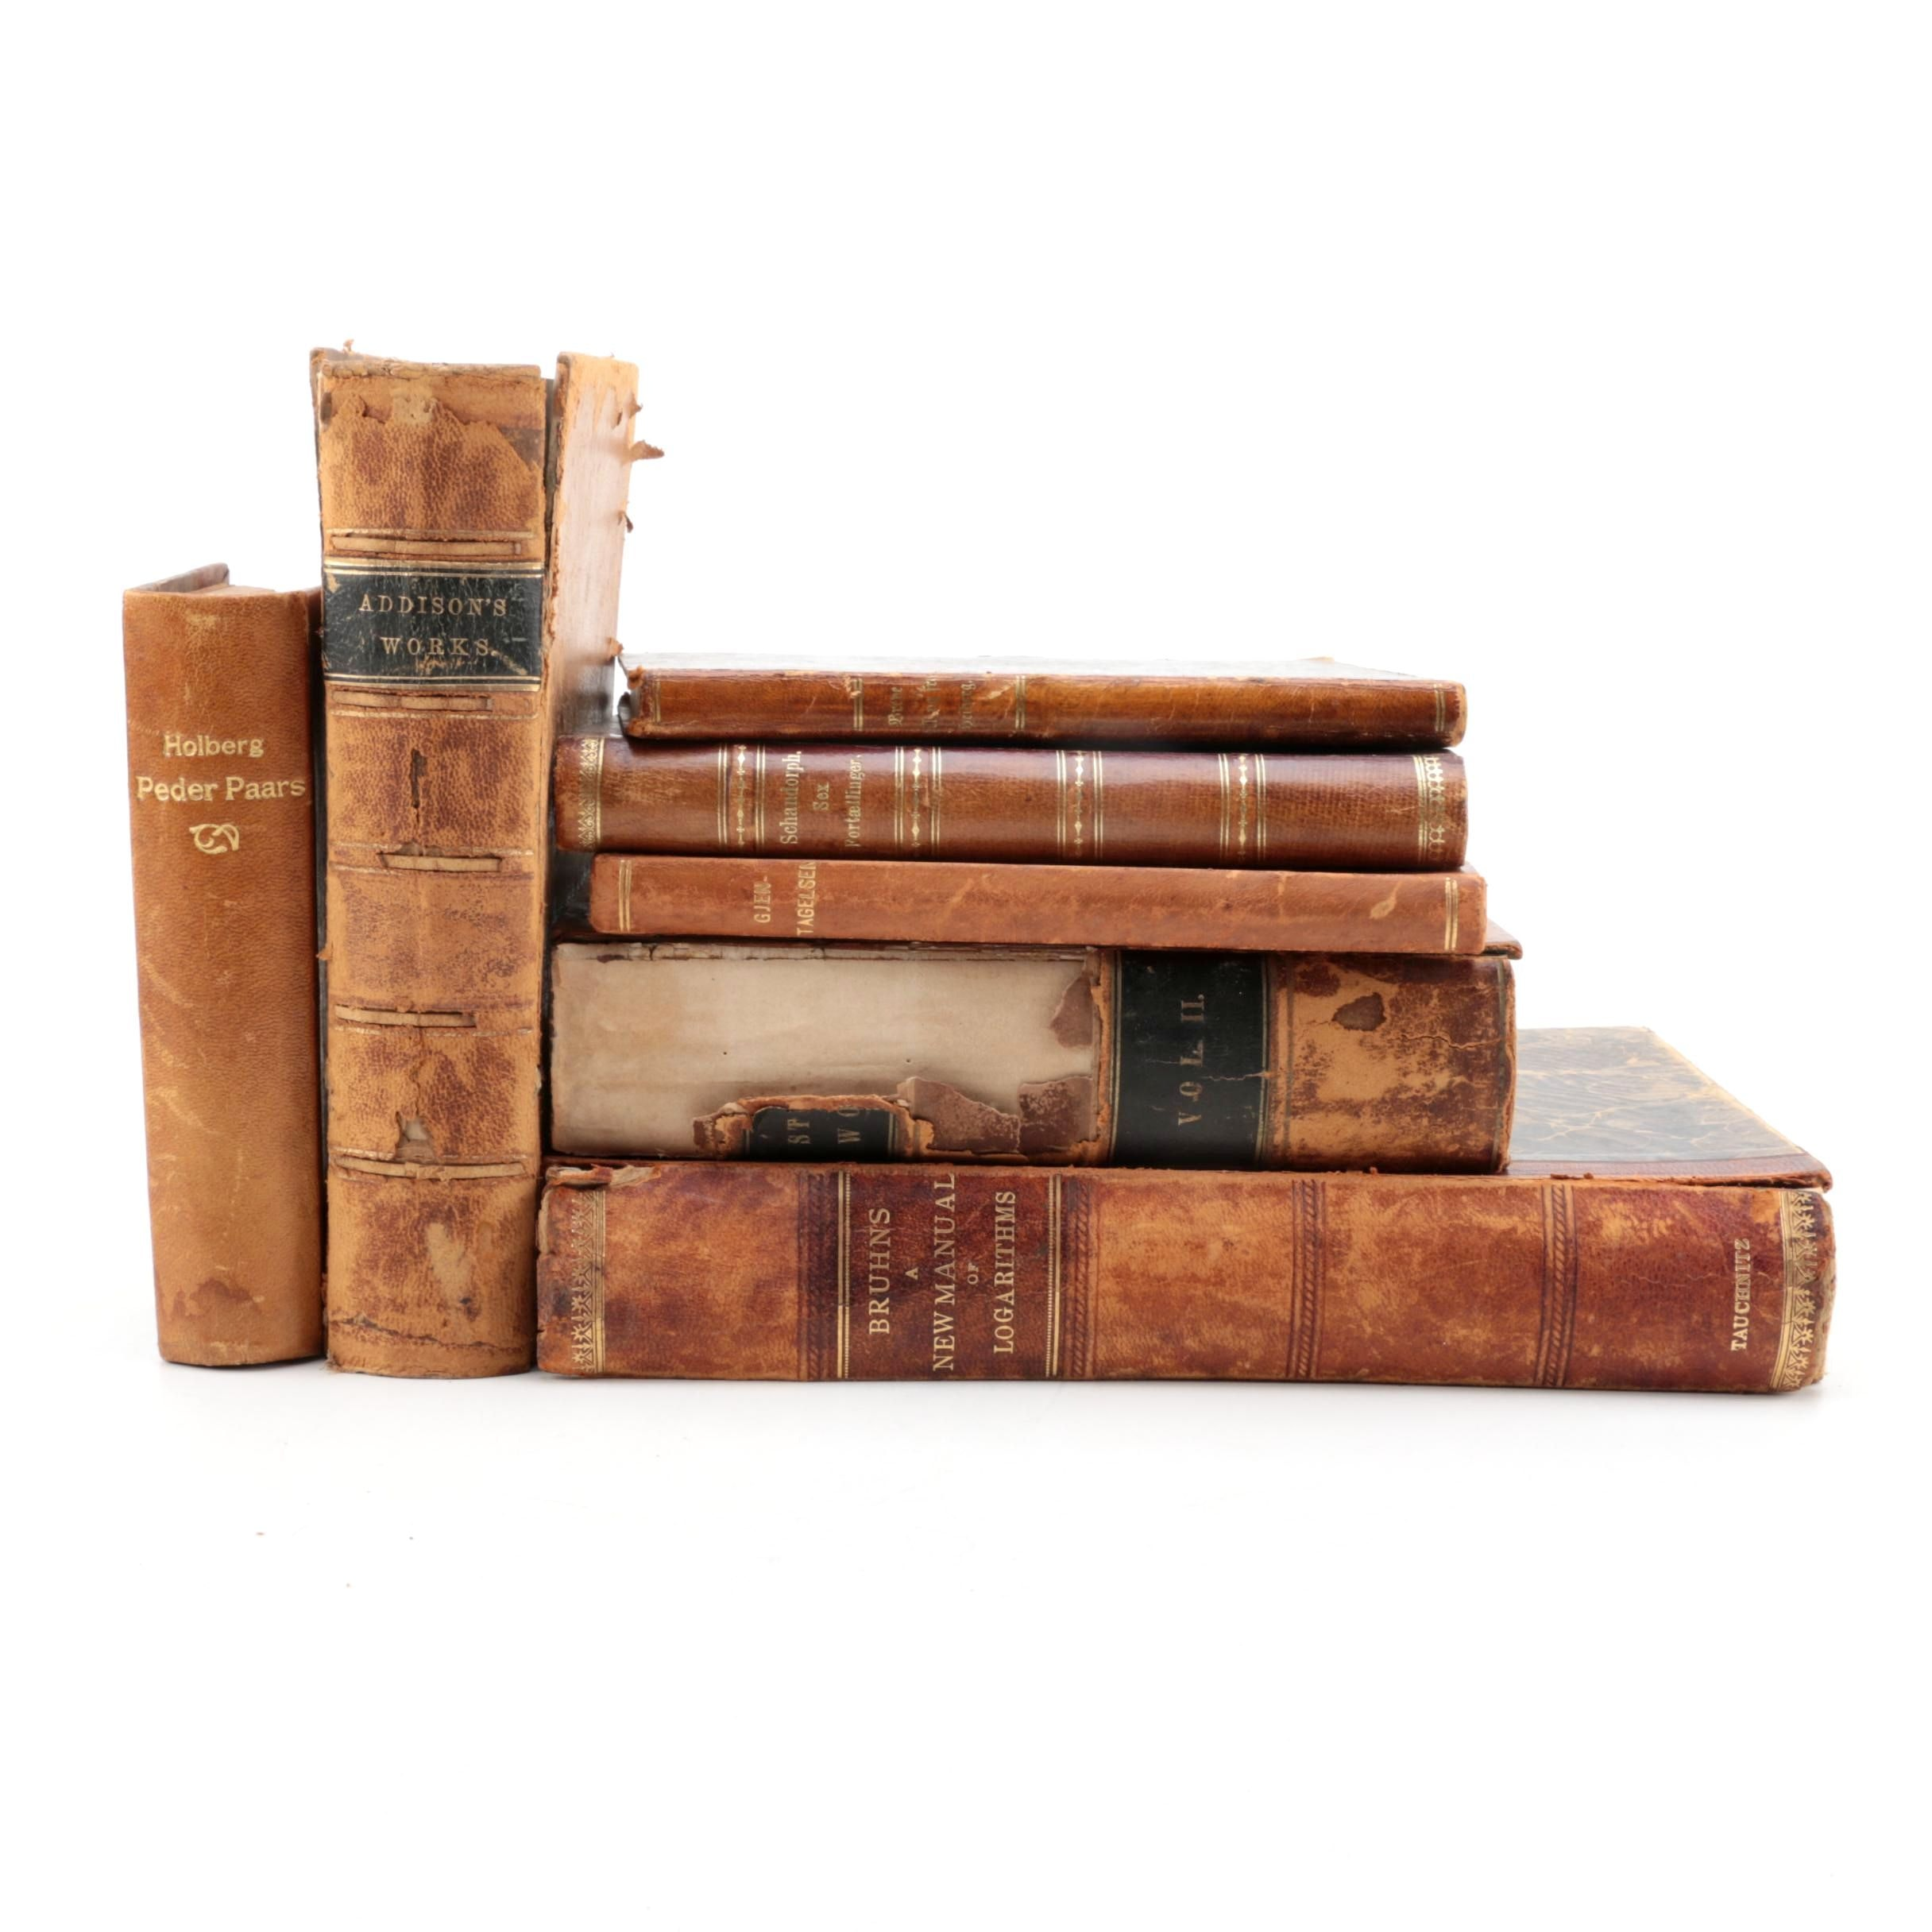 Antique Leather Bound Books